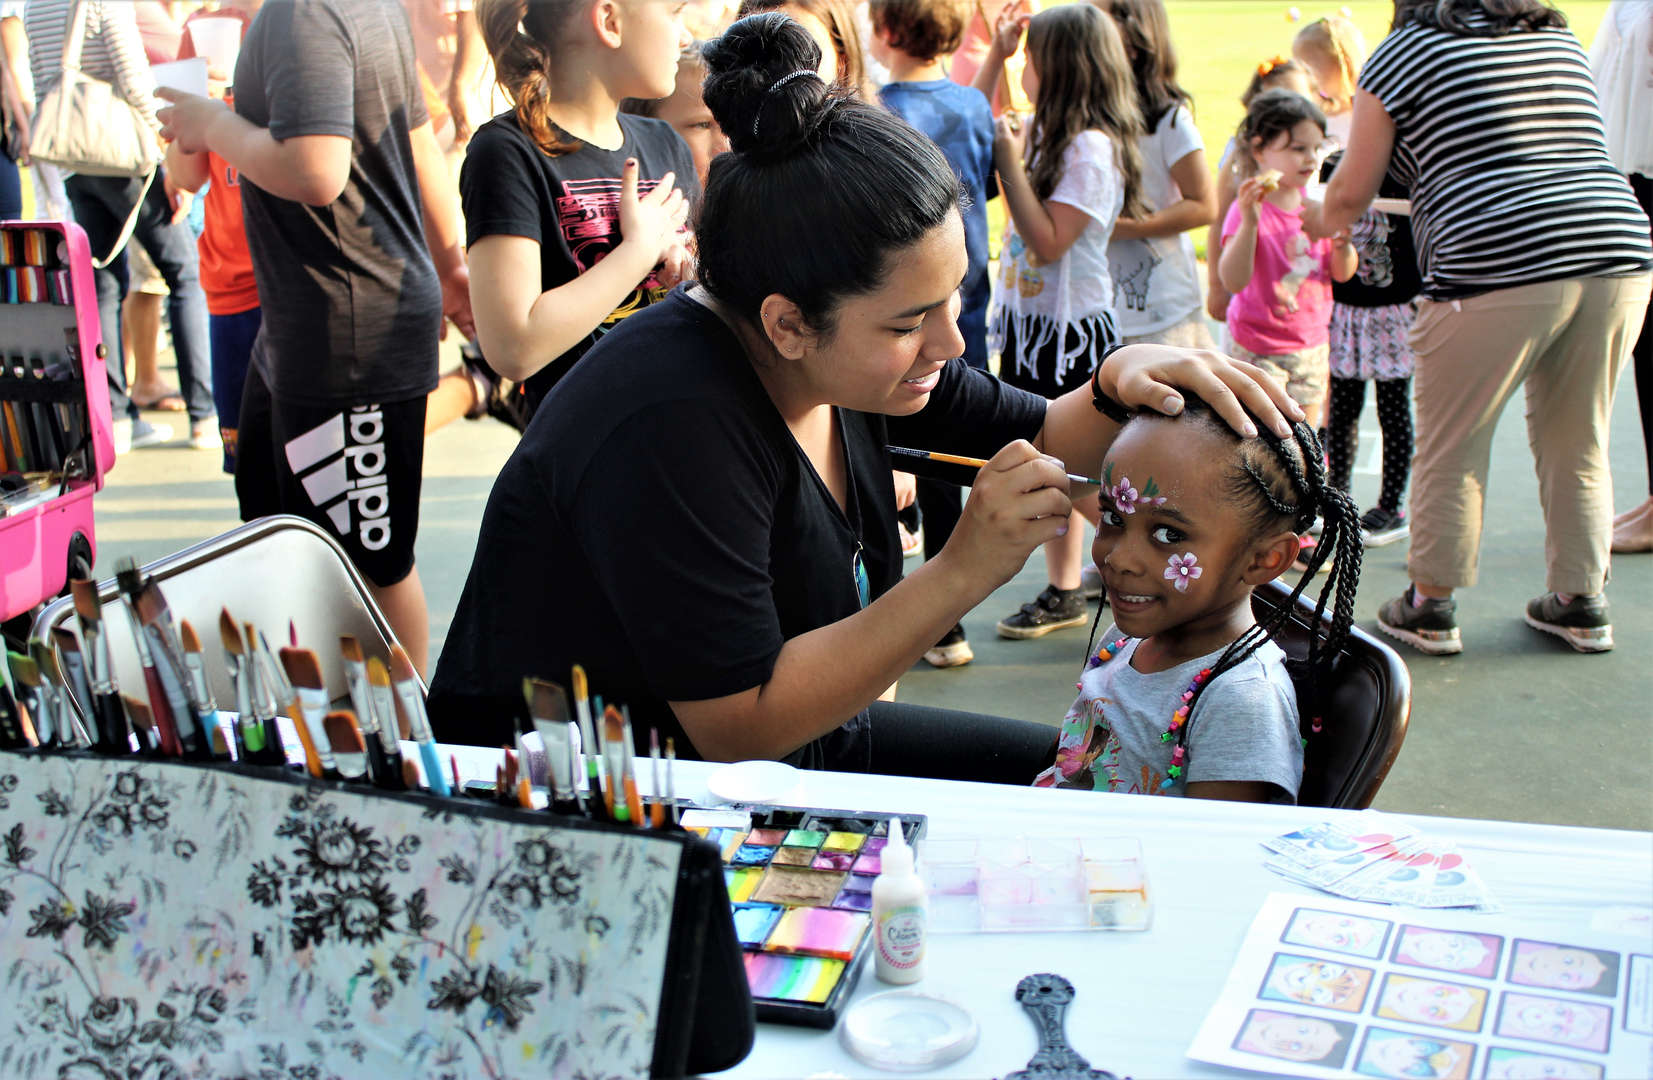 A girl gets her face painted at the PTA Barbecue.